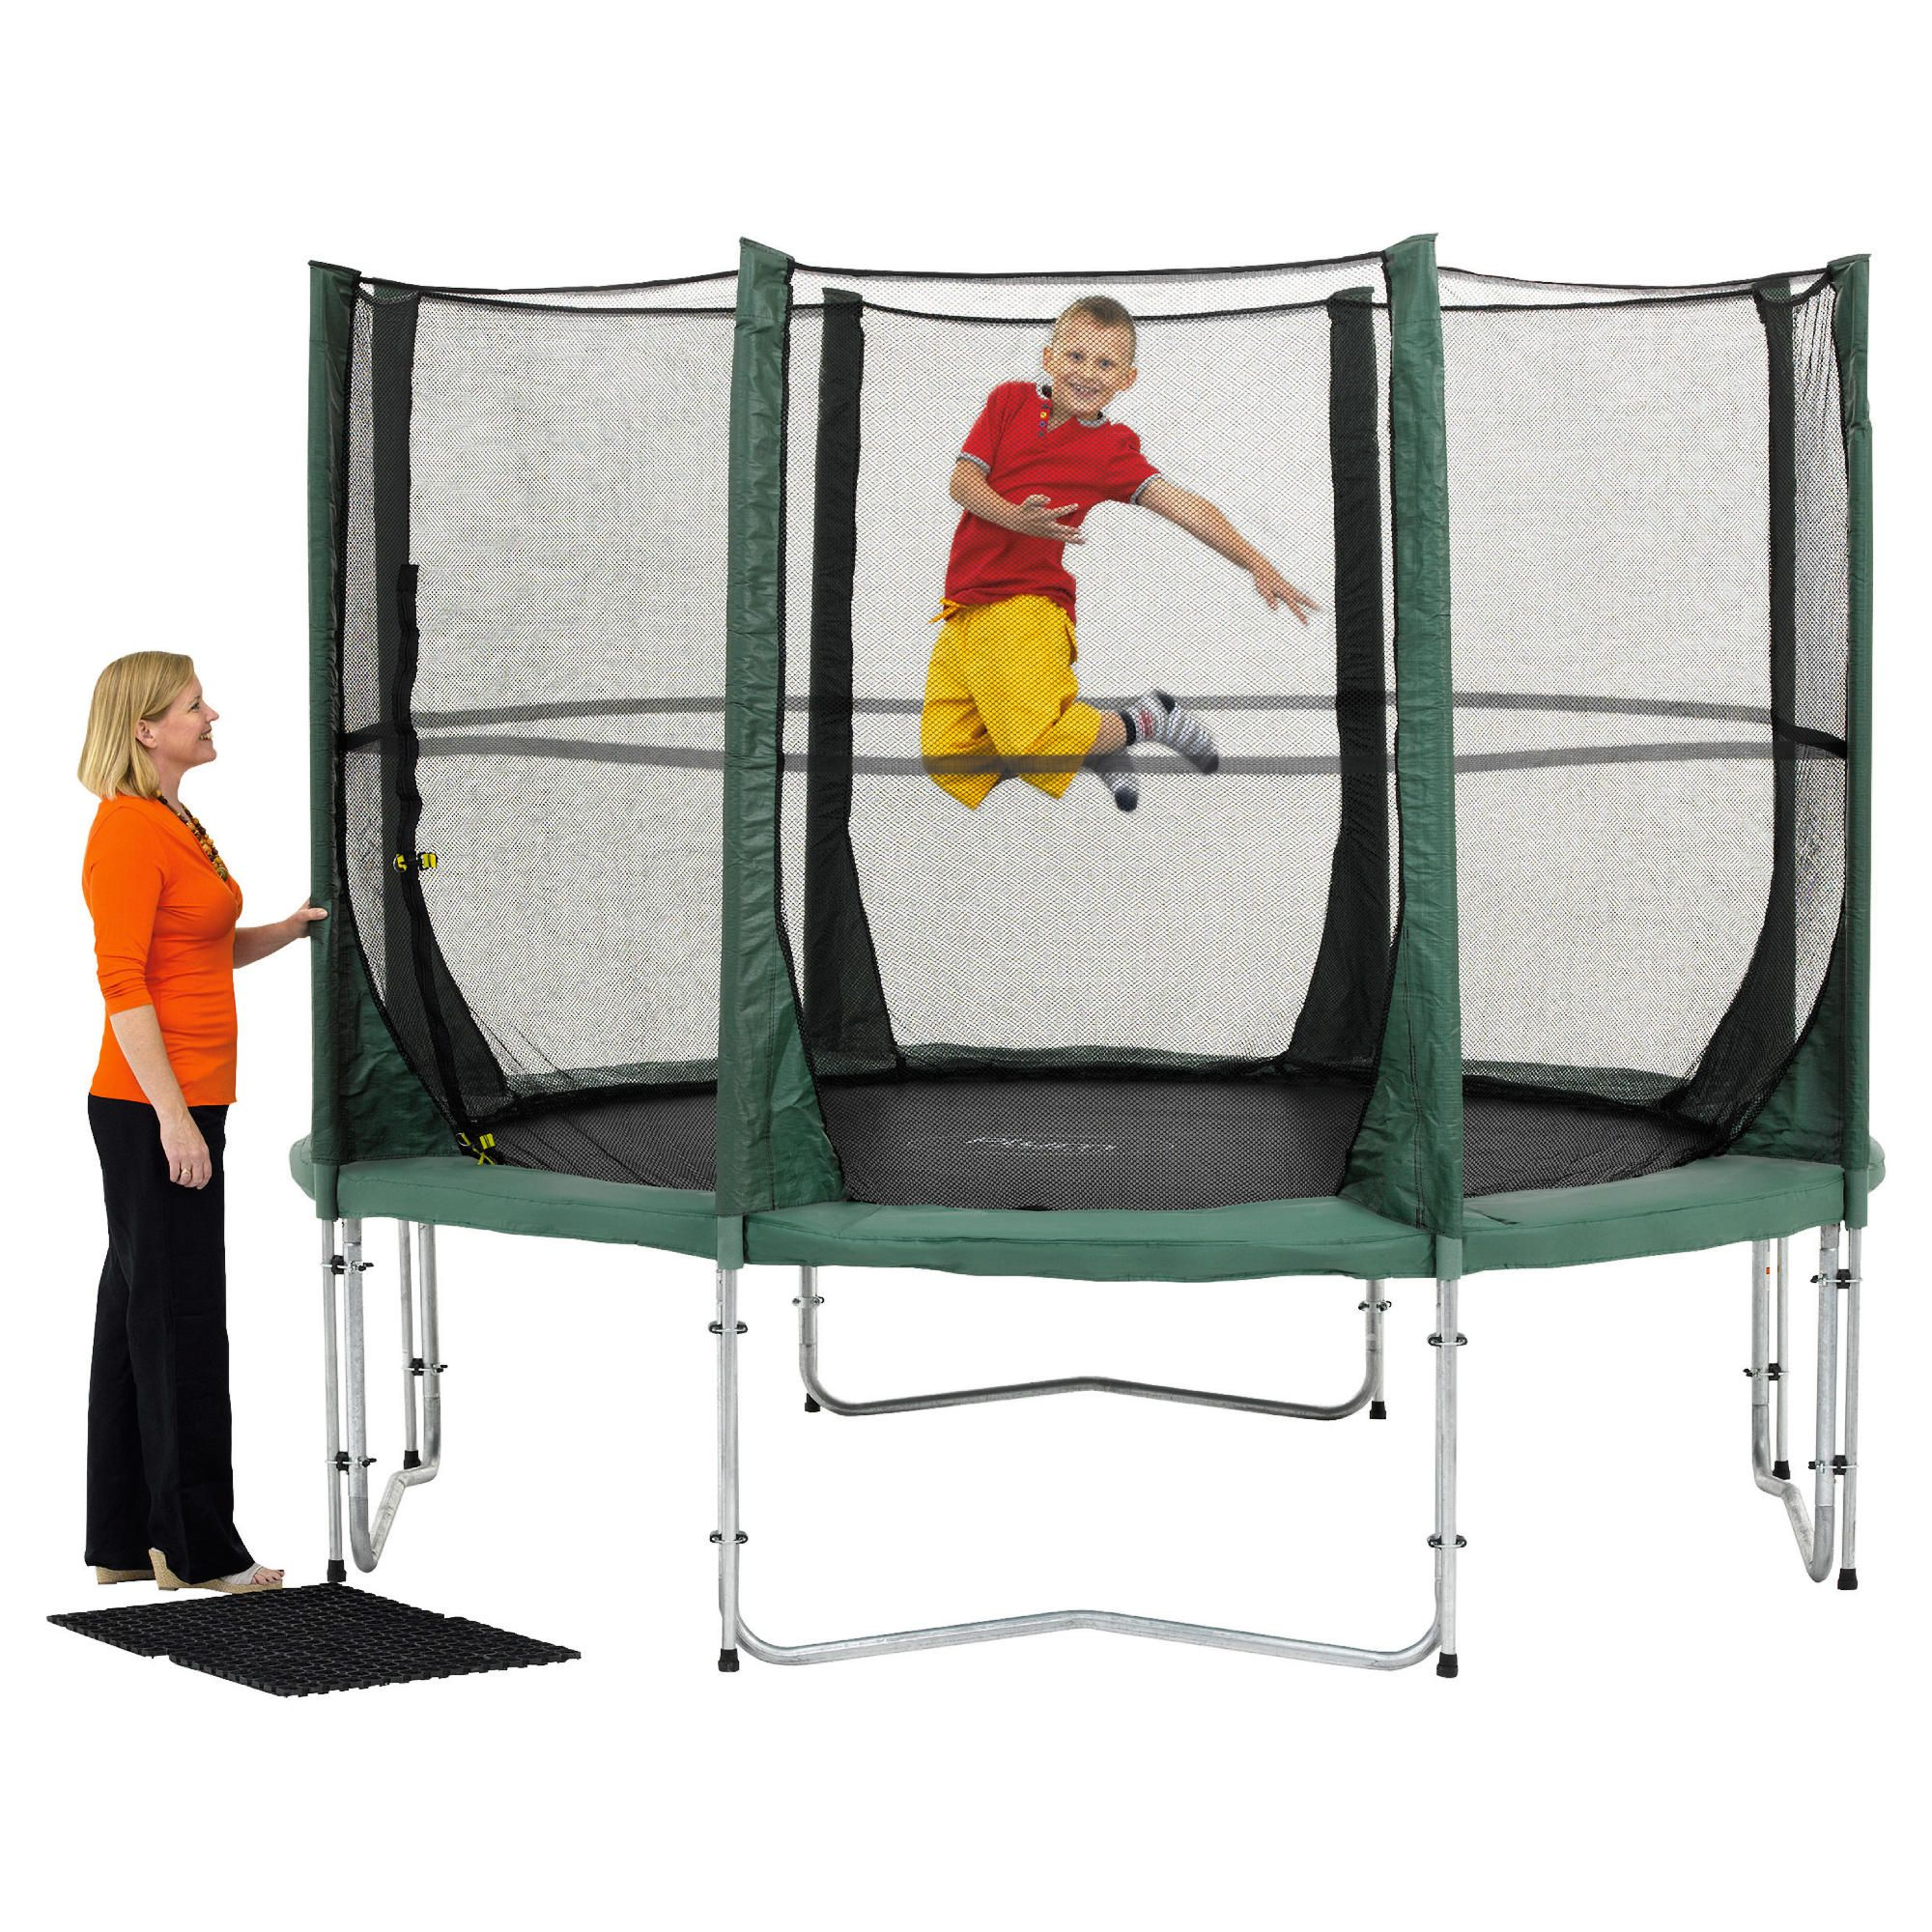 Plum 14ft Trampoline and 3G Enclosure at Tesco Direct